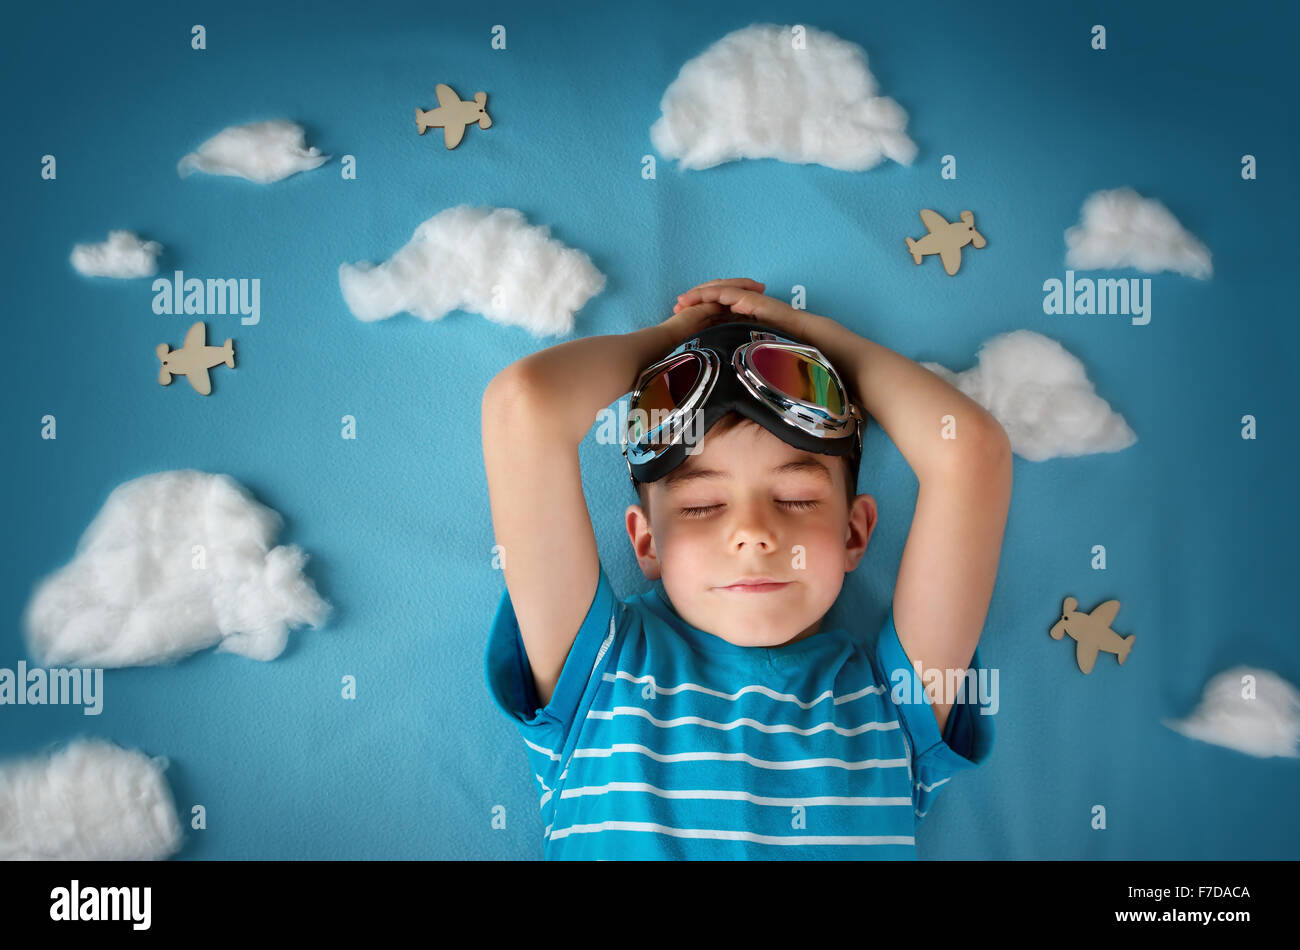 Boy lying on blanket with white clouds Photo Stock